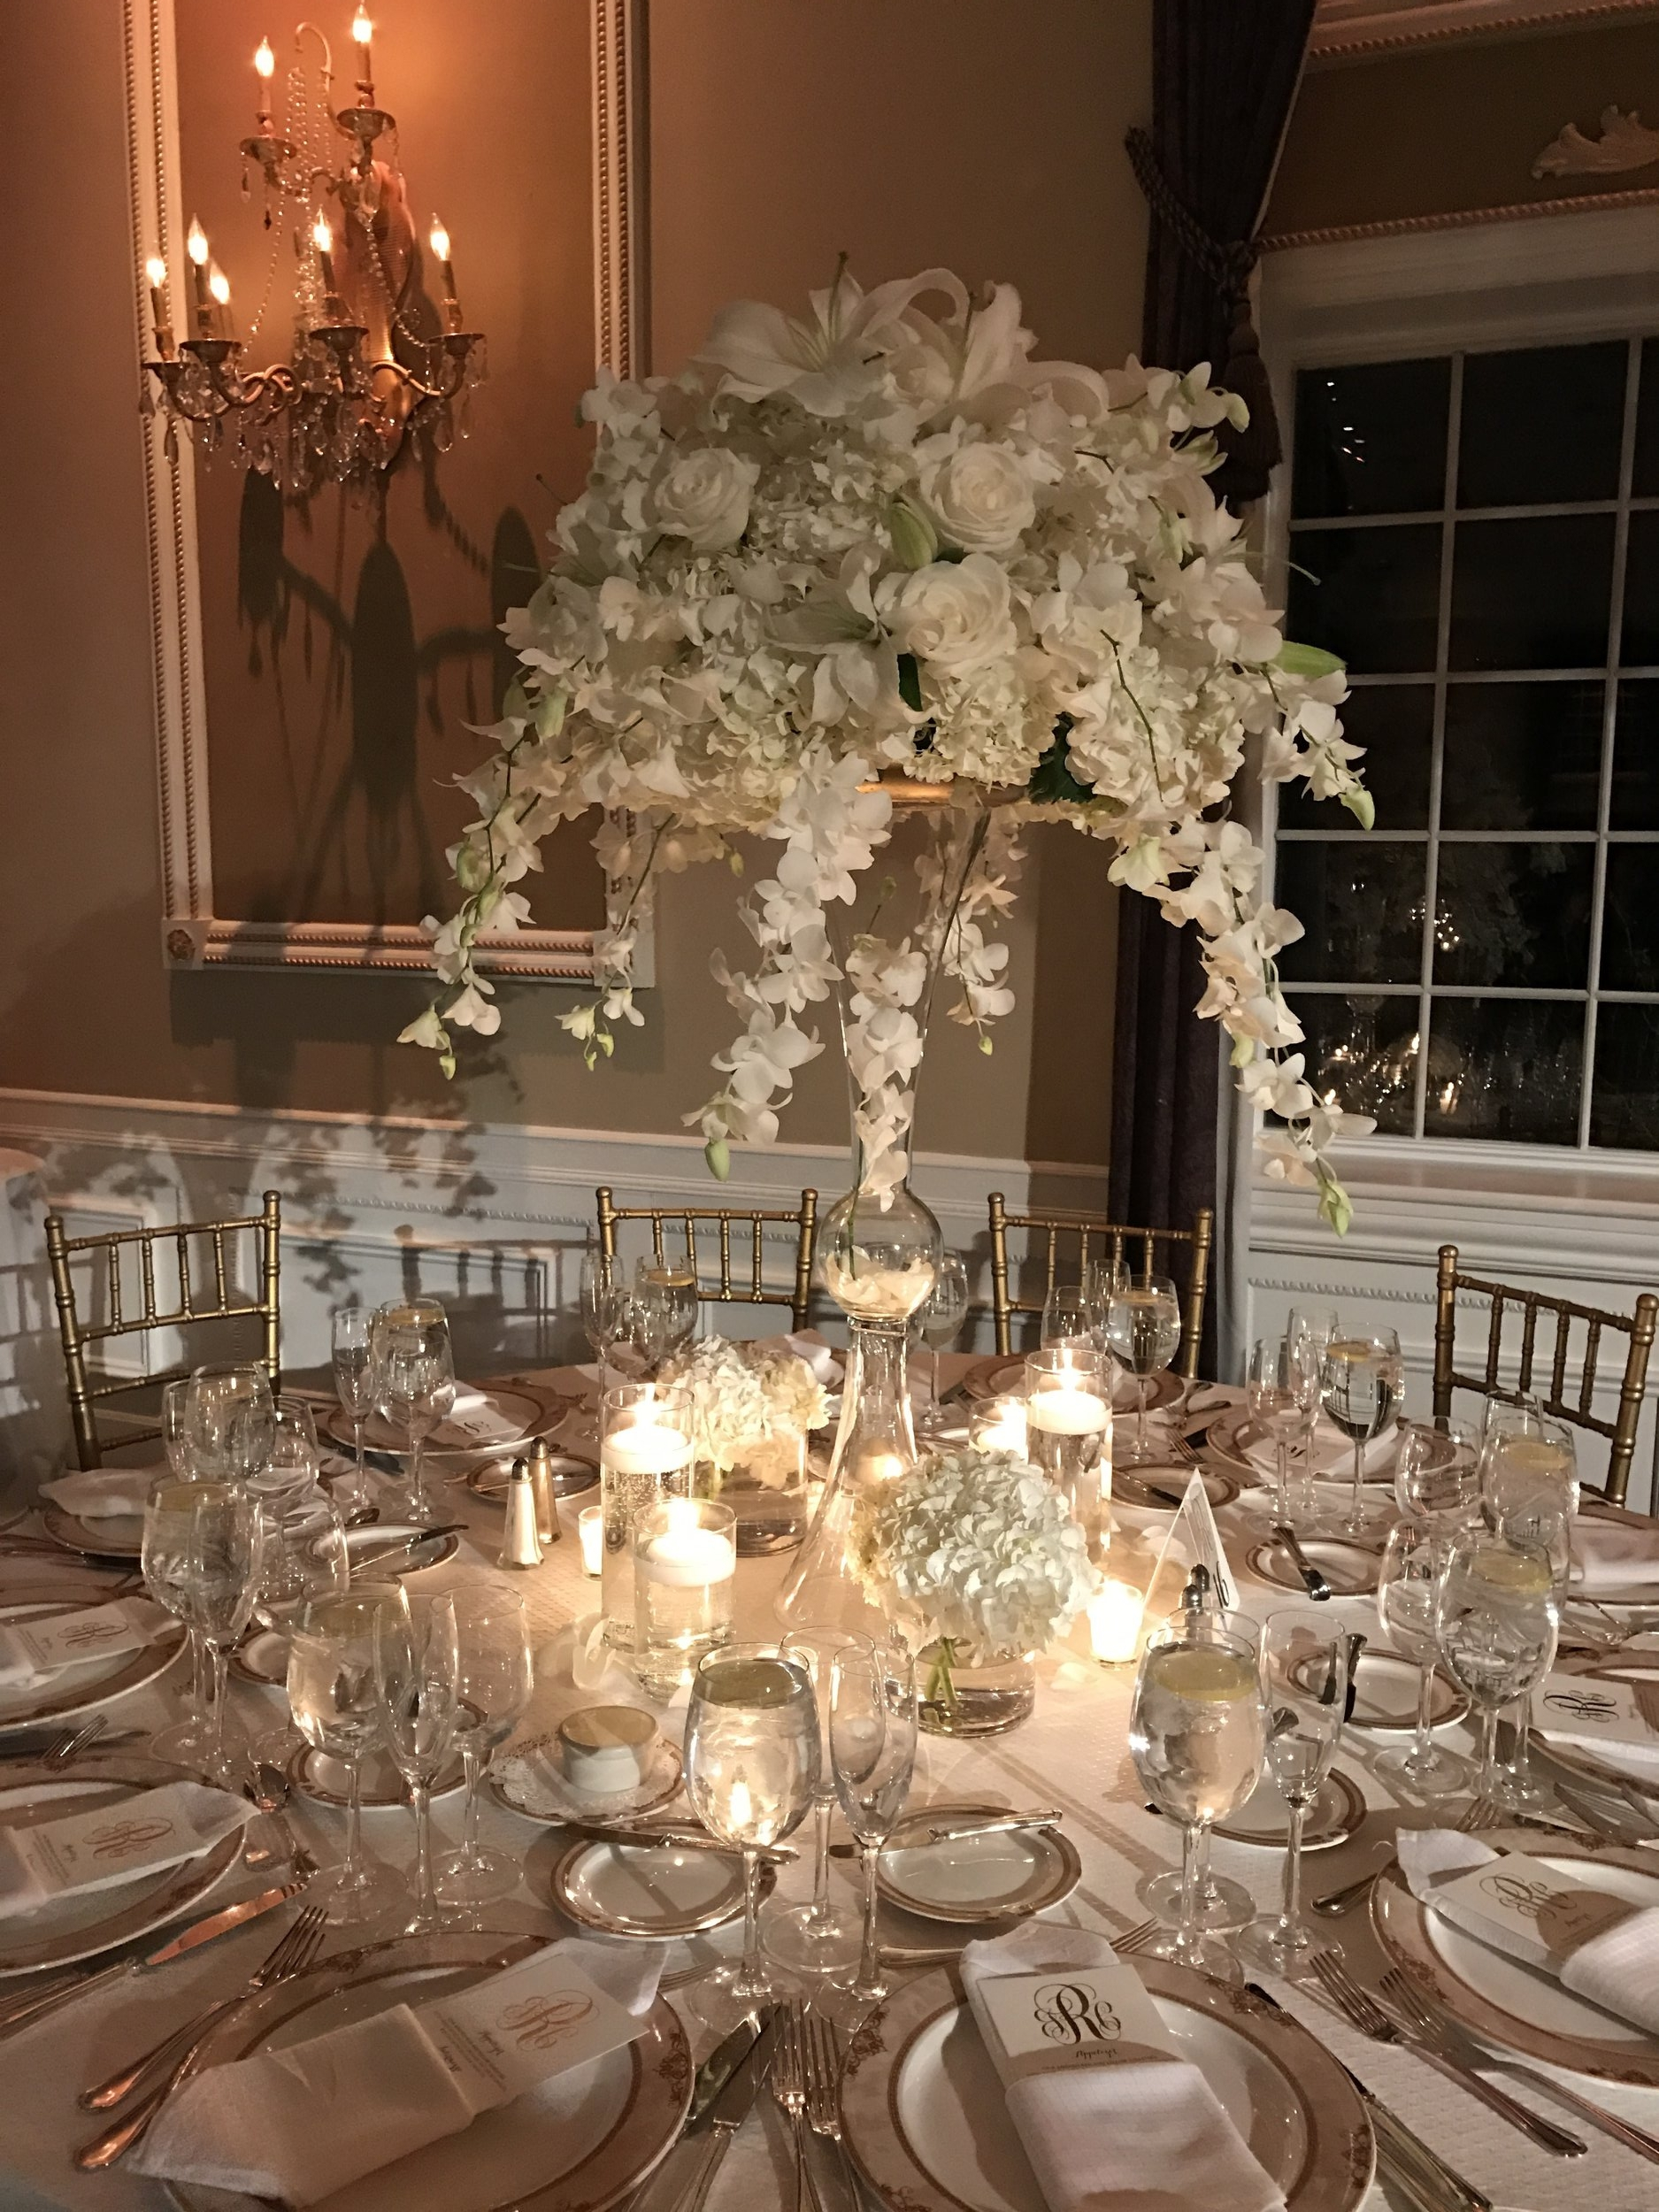 Robins Wedding Centerpiece 2.jpg